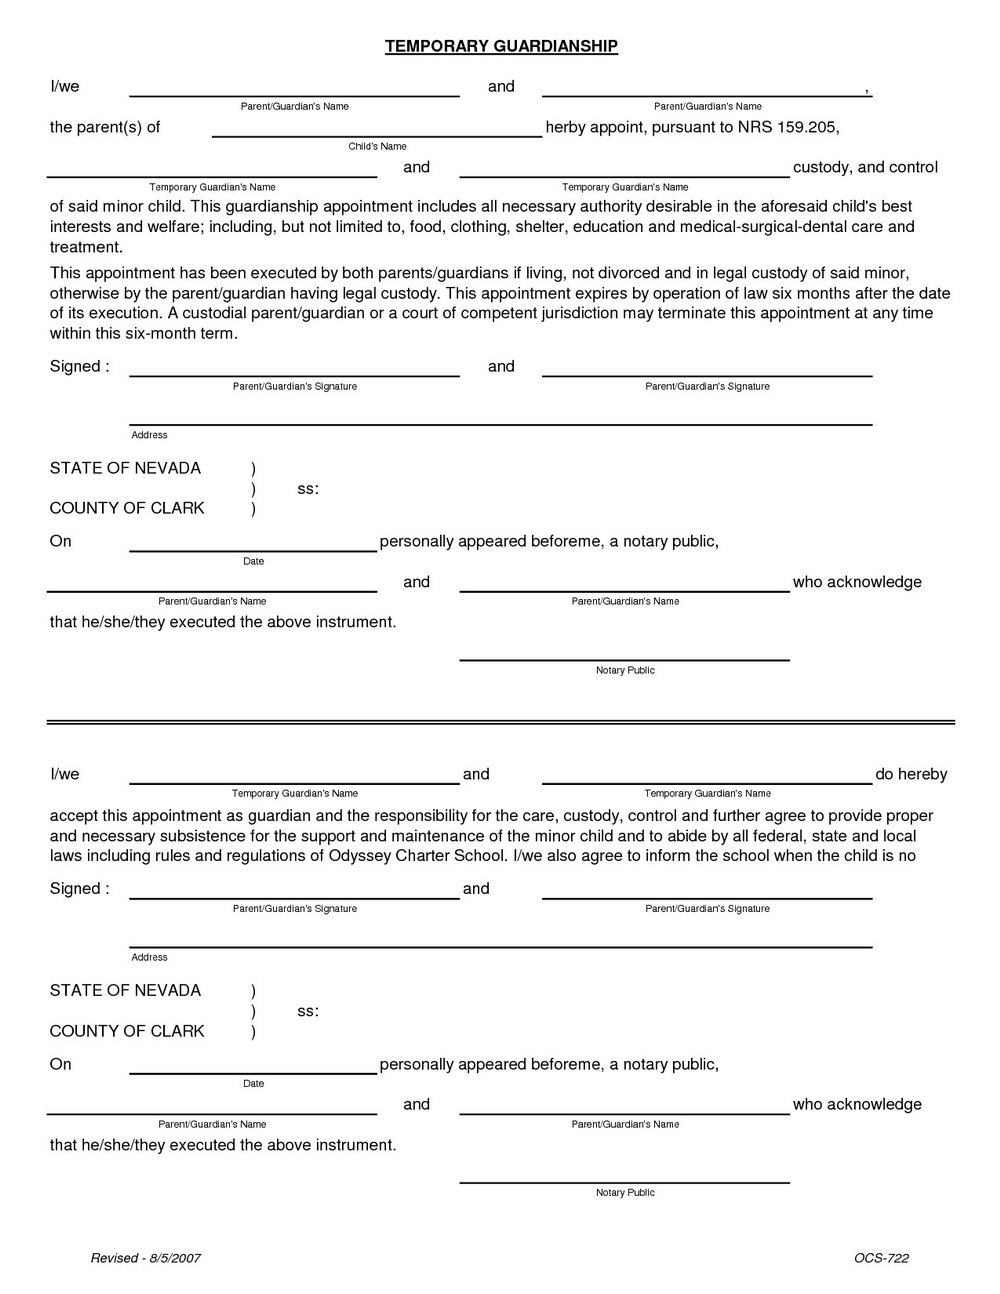 Temporary Guardianship Form Indiana